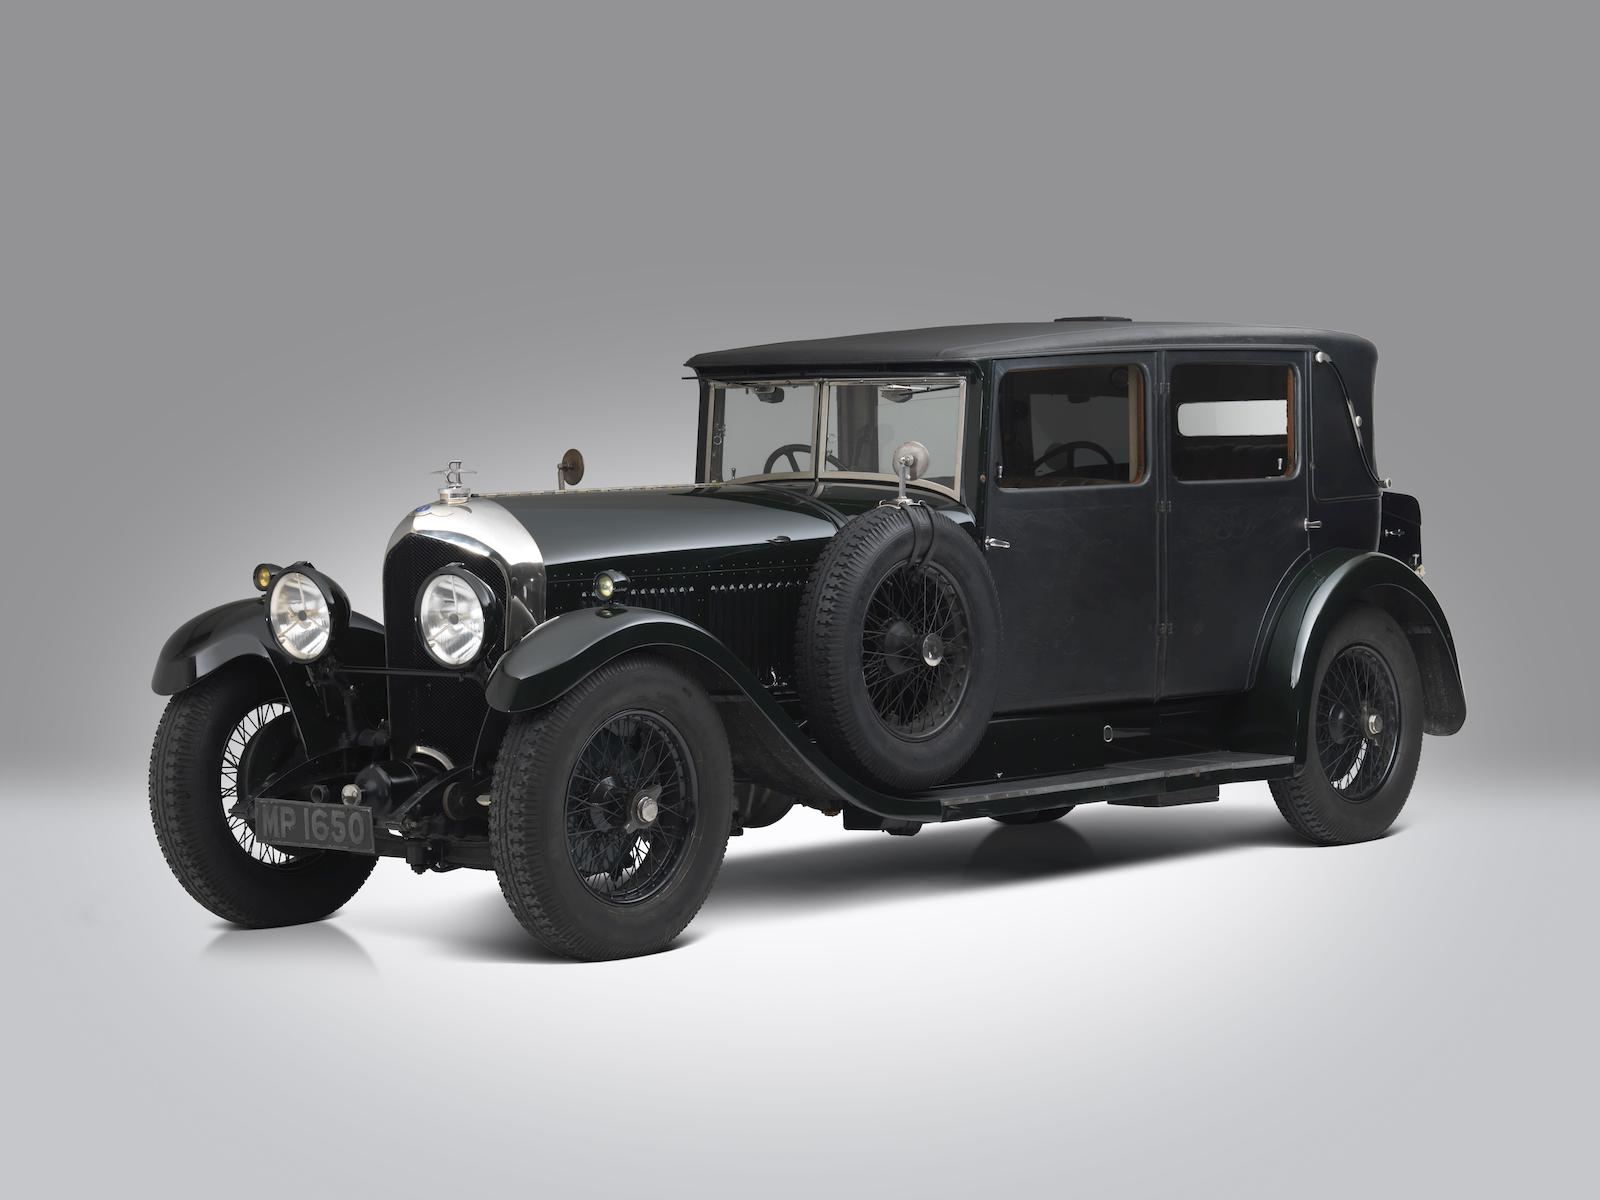 1928 Bentley 6 ½ Liter Four Light Weymann Fabric Sports Saloon